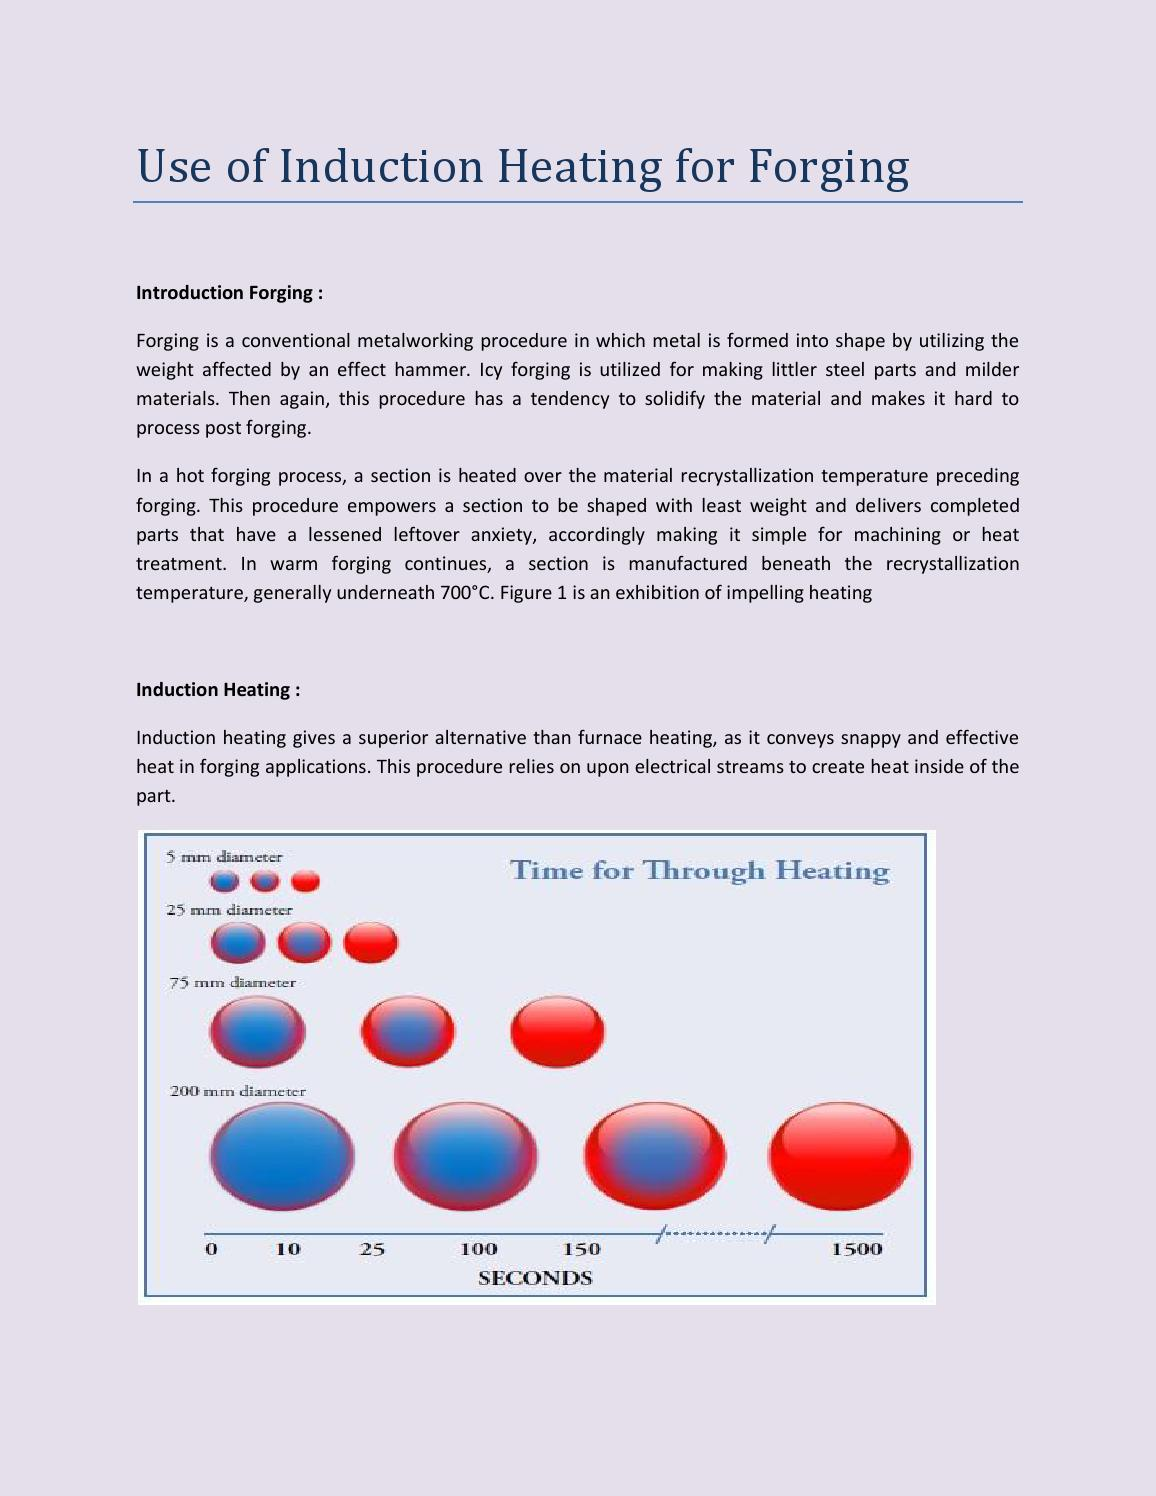 Use Of Induction Heating For Forging By Stead Fast Engineers Pvt Ltd Diagram Issuu